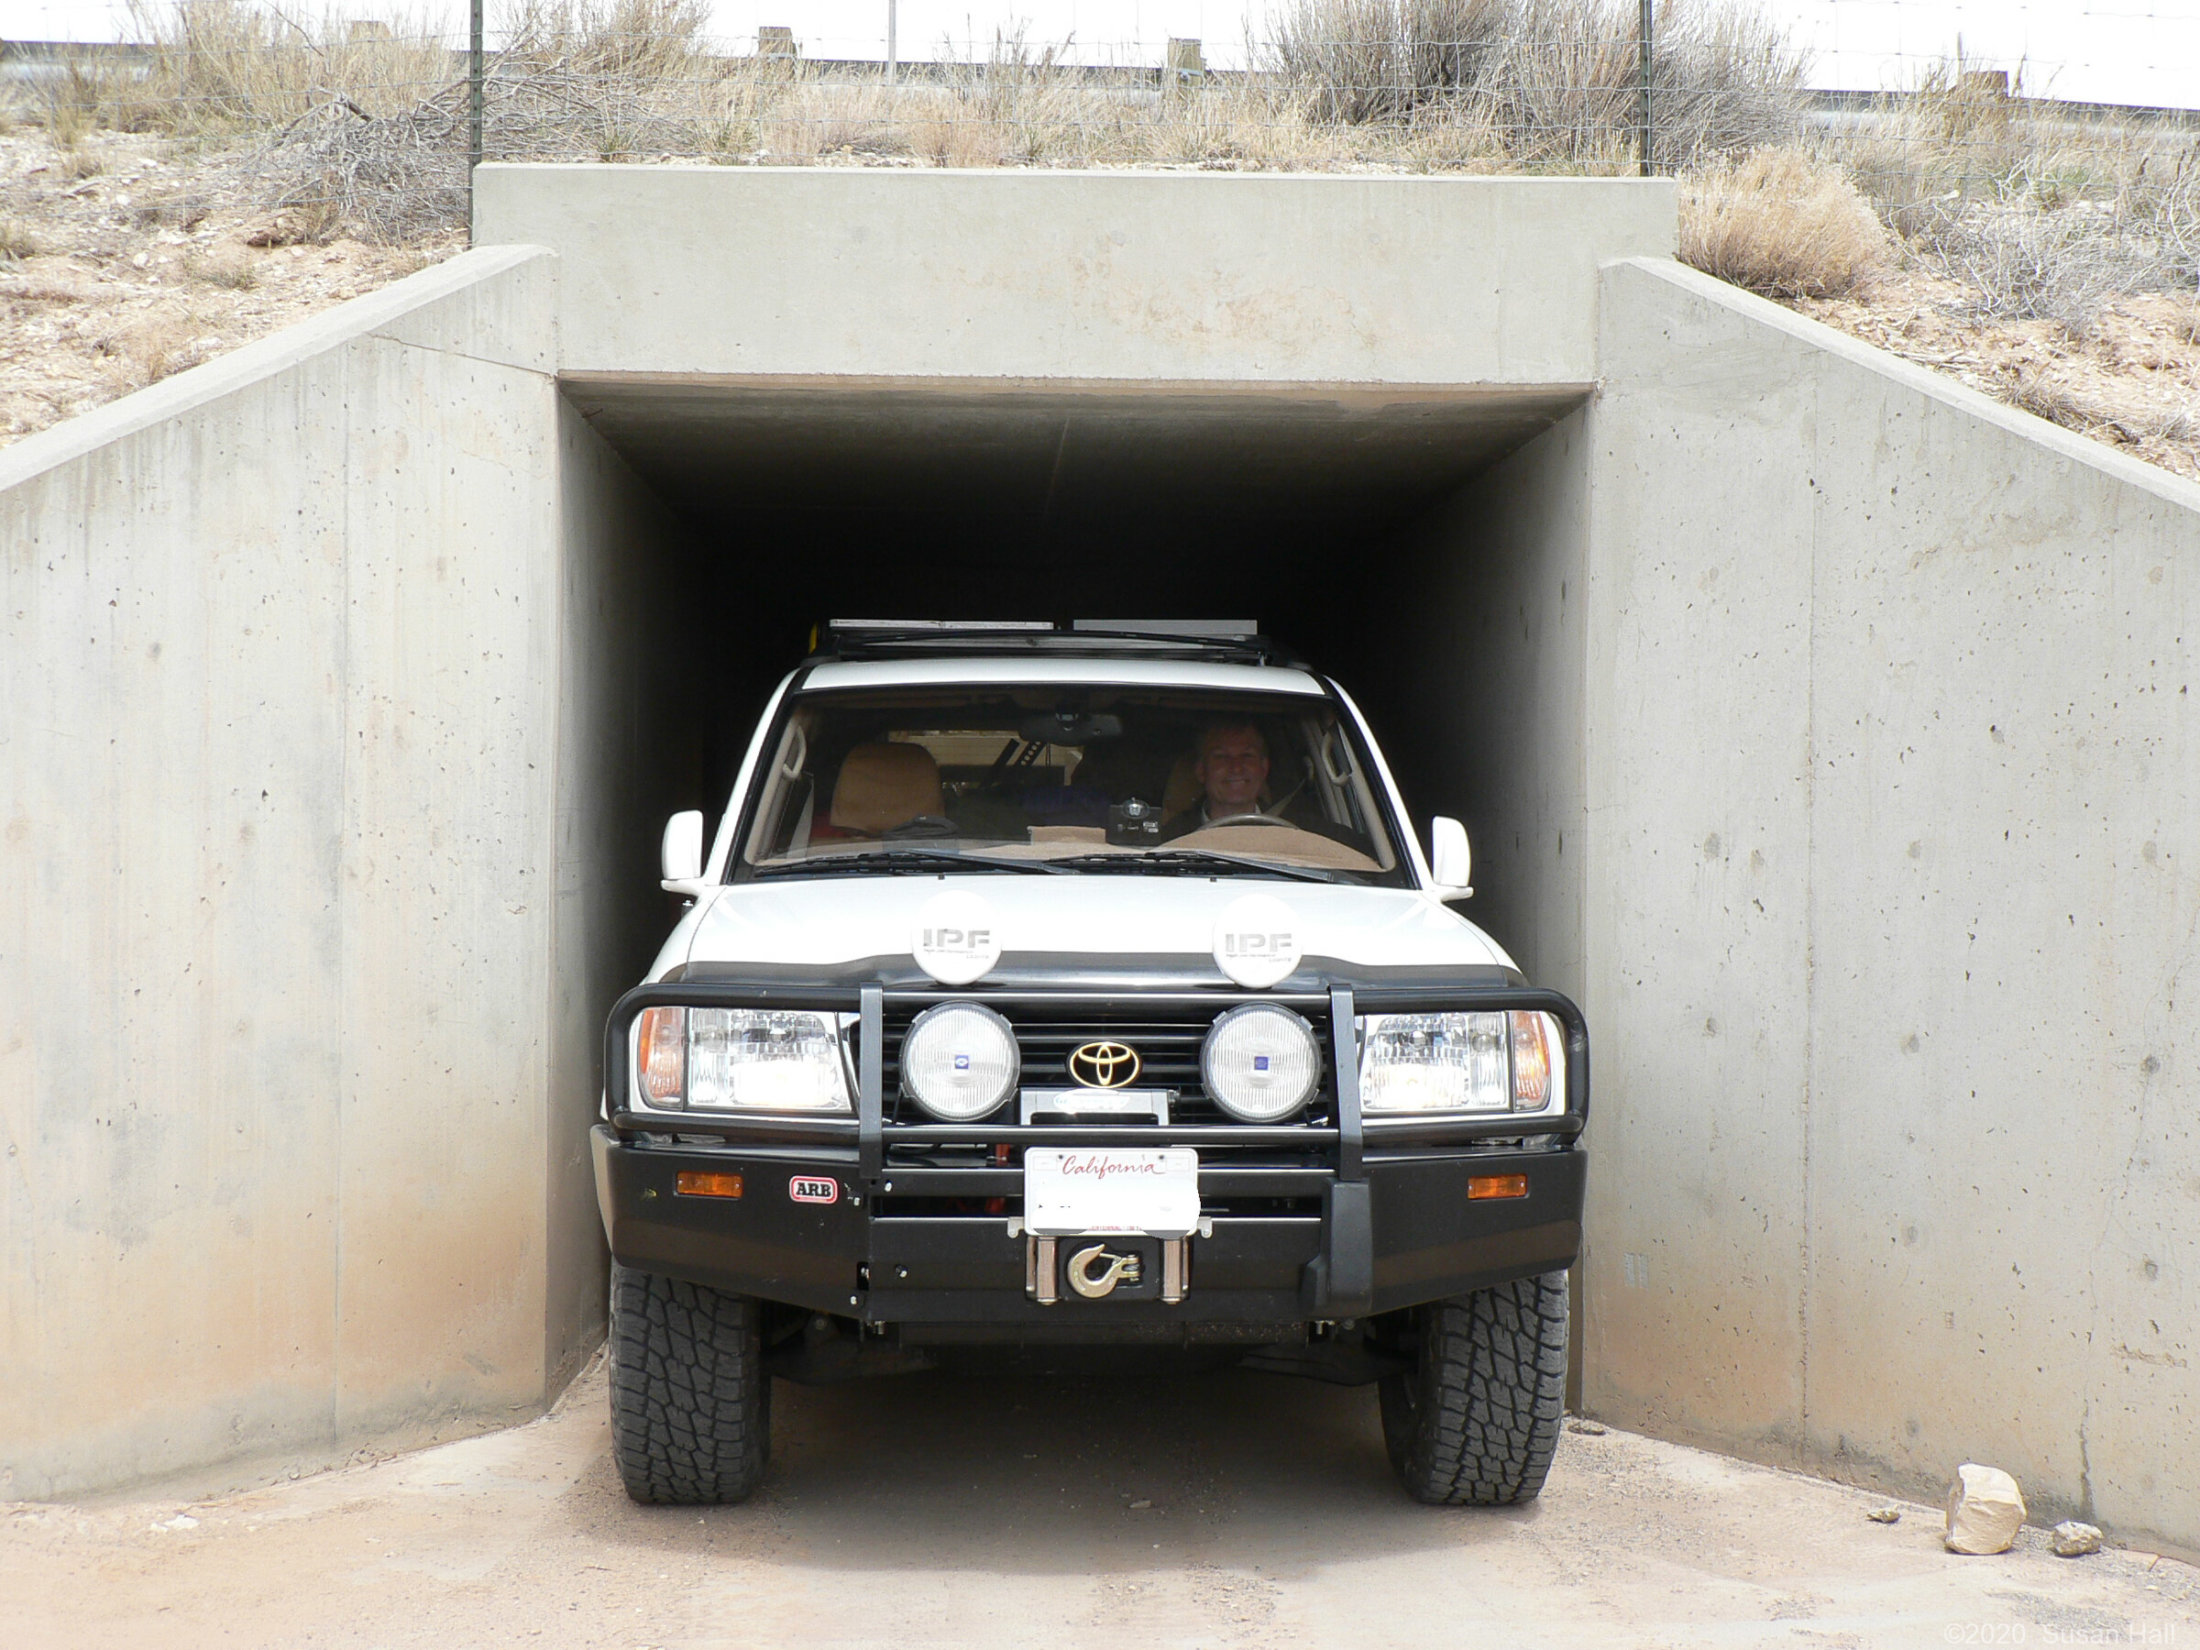 Eagle Canyon exit is a tight squeeze